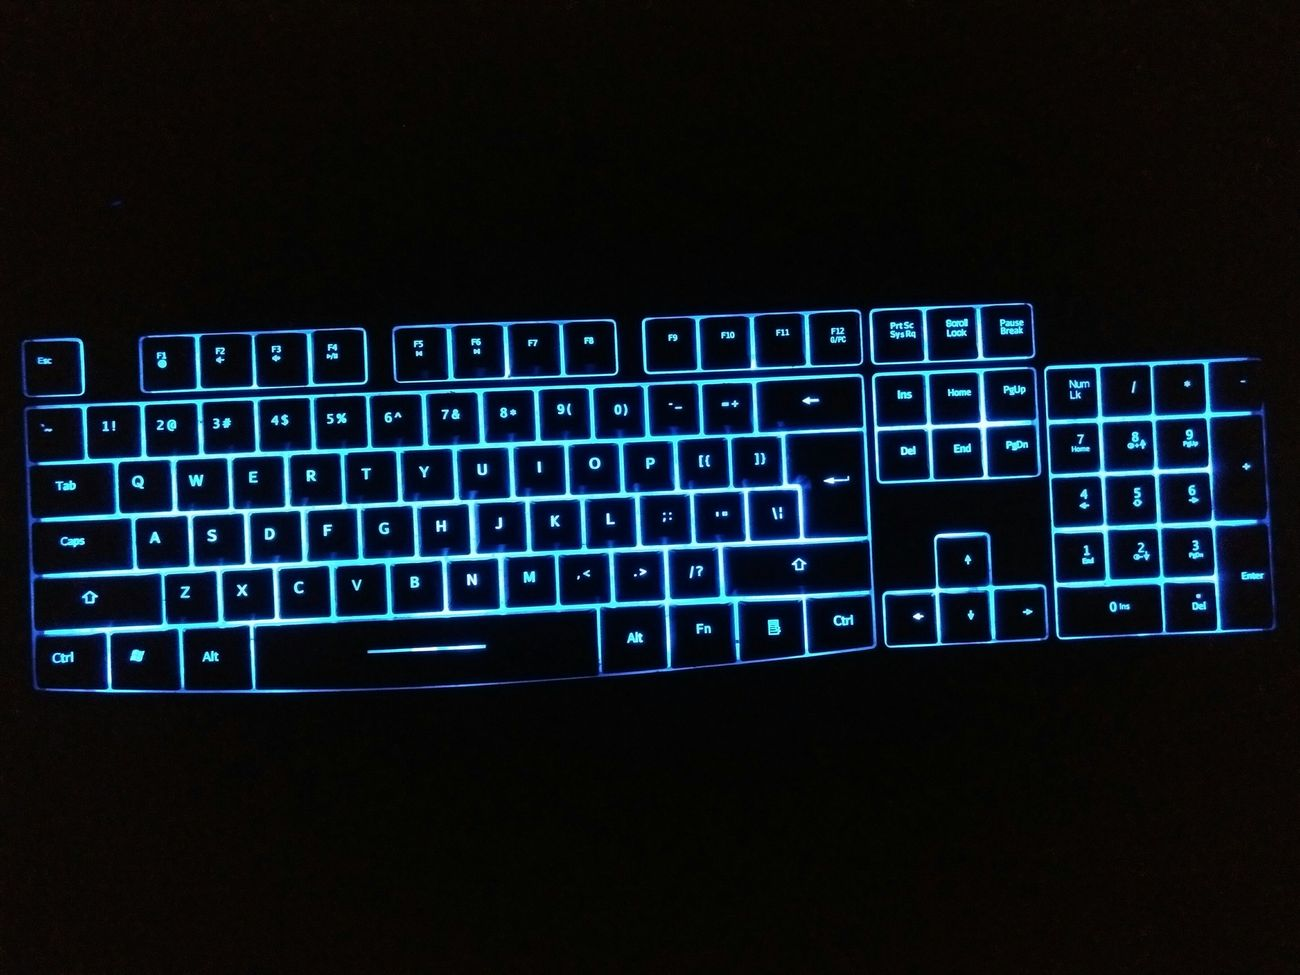 Technology LED Keyboard Backlit Qwerty Keyboard Computer Mobile Conversations